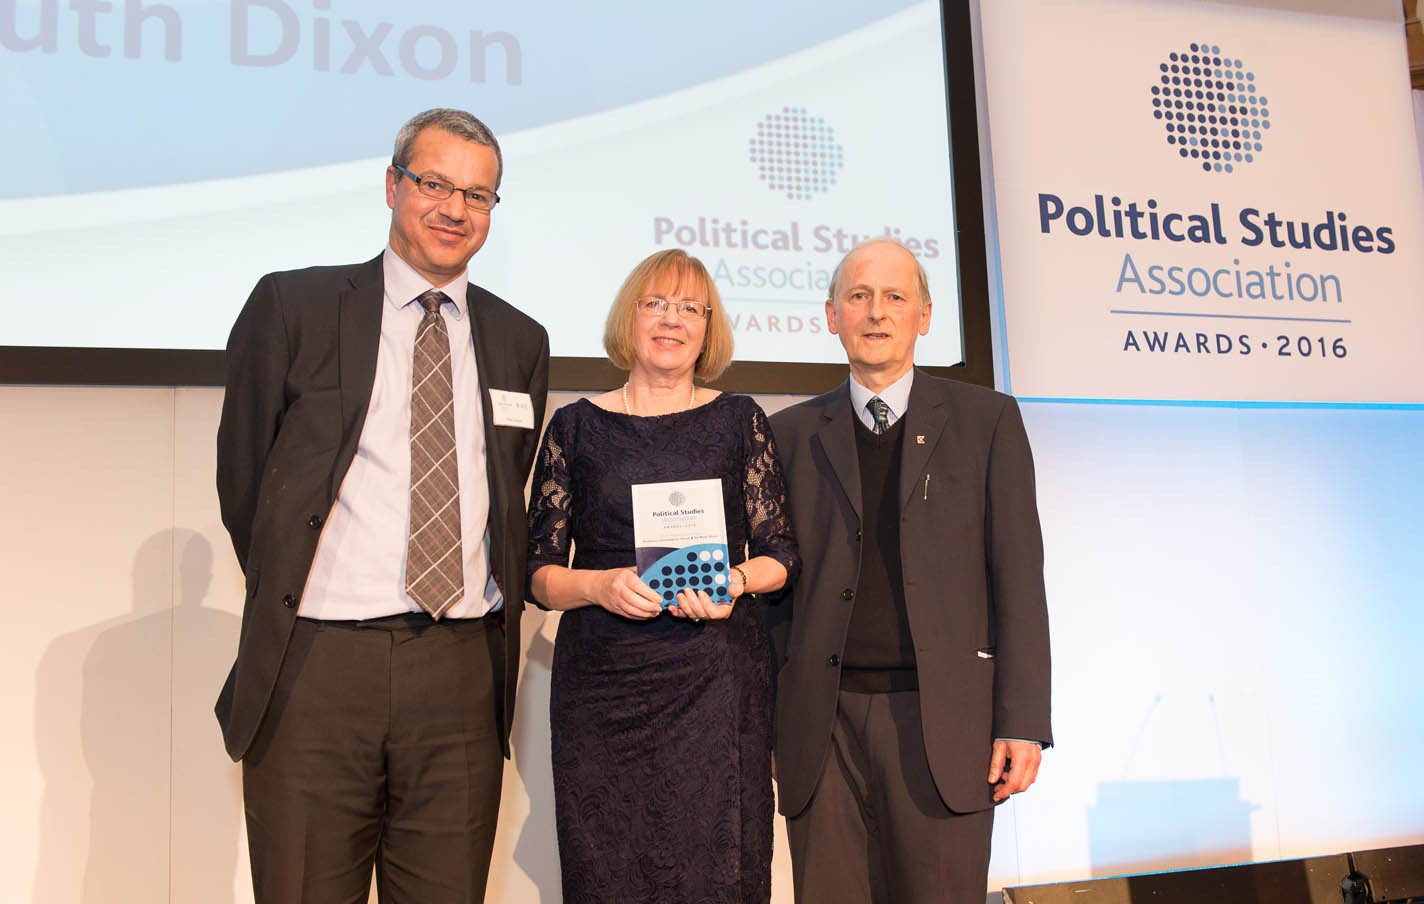 Congratulations again to @ruth_dixon and Christopher Hood for winning W. J. M. Mackenzie Book Prize @PolStudiesAssoc https://t.co/BSbbs8y7CG https://t.co/f7LAcoHoaF